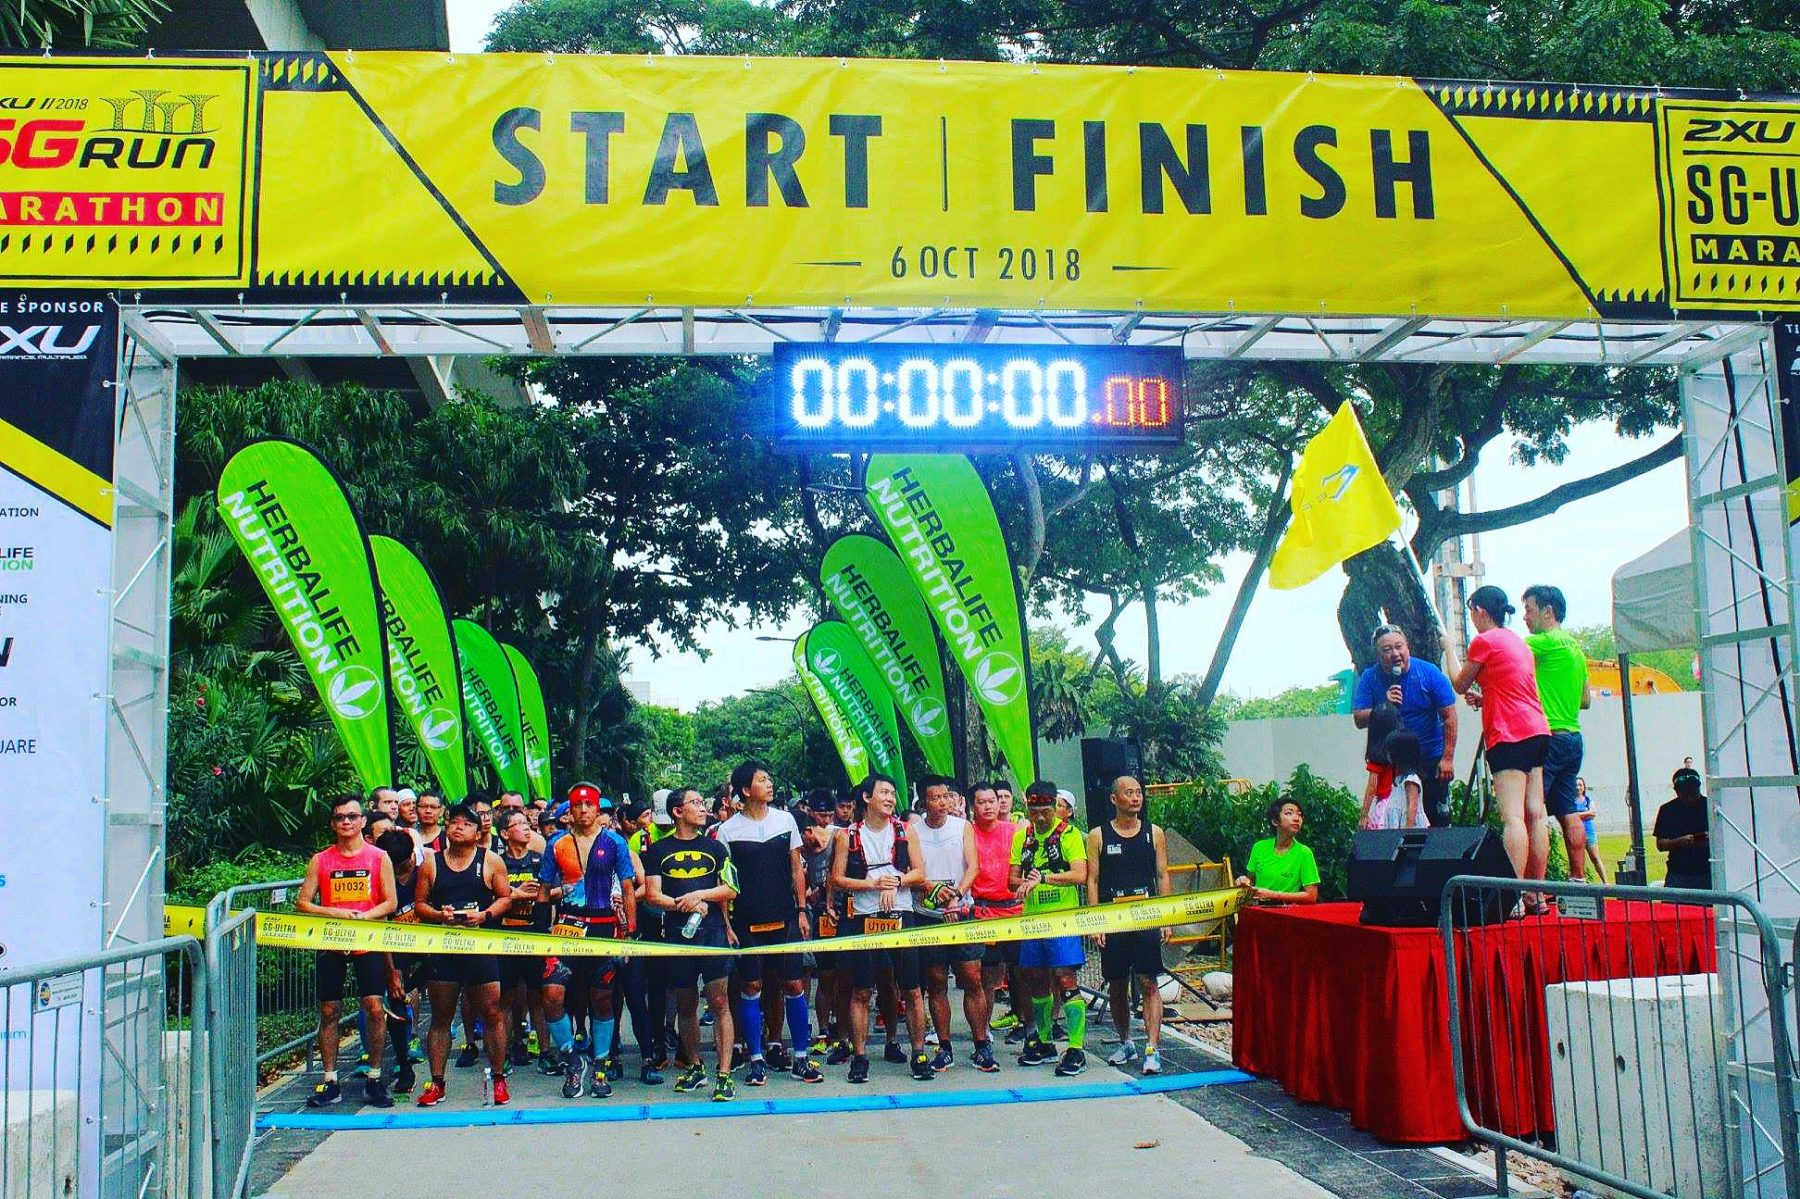 2XU Ultramarathon Start Line